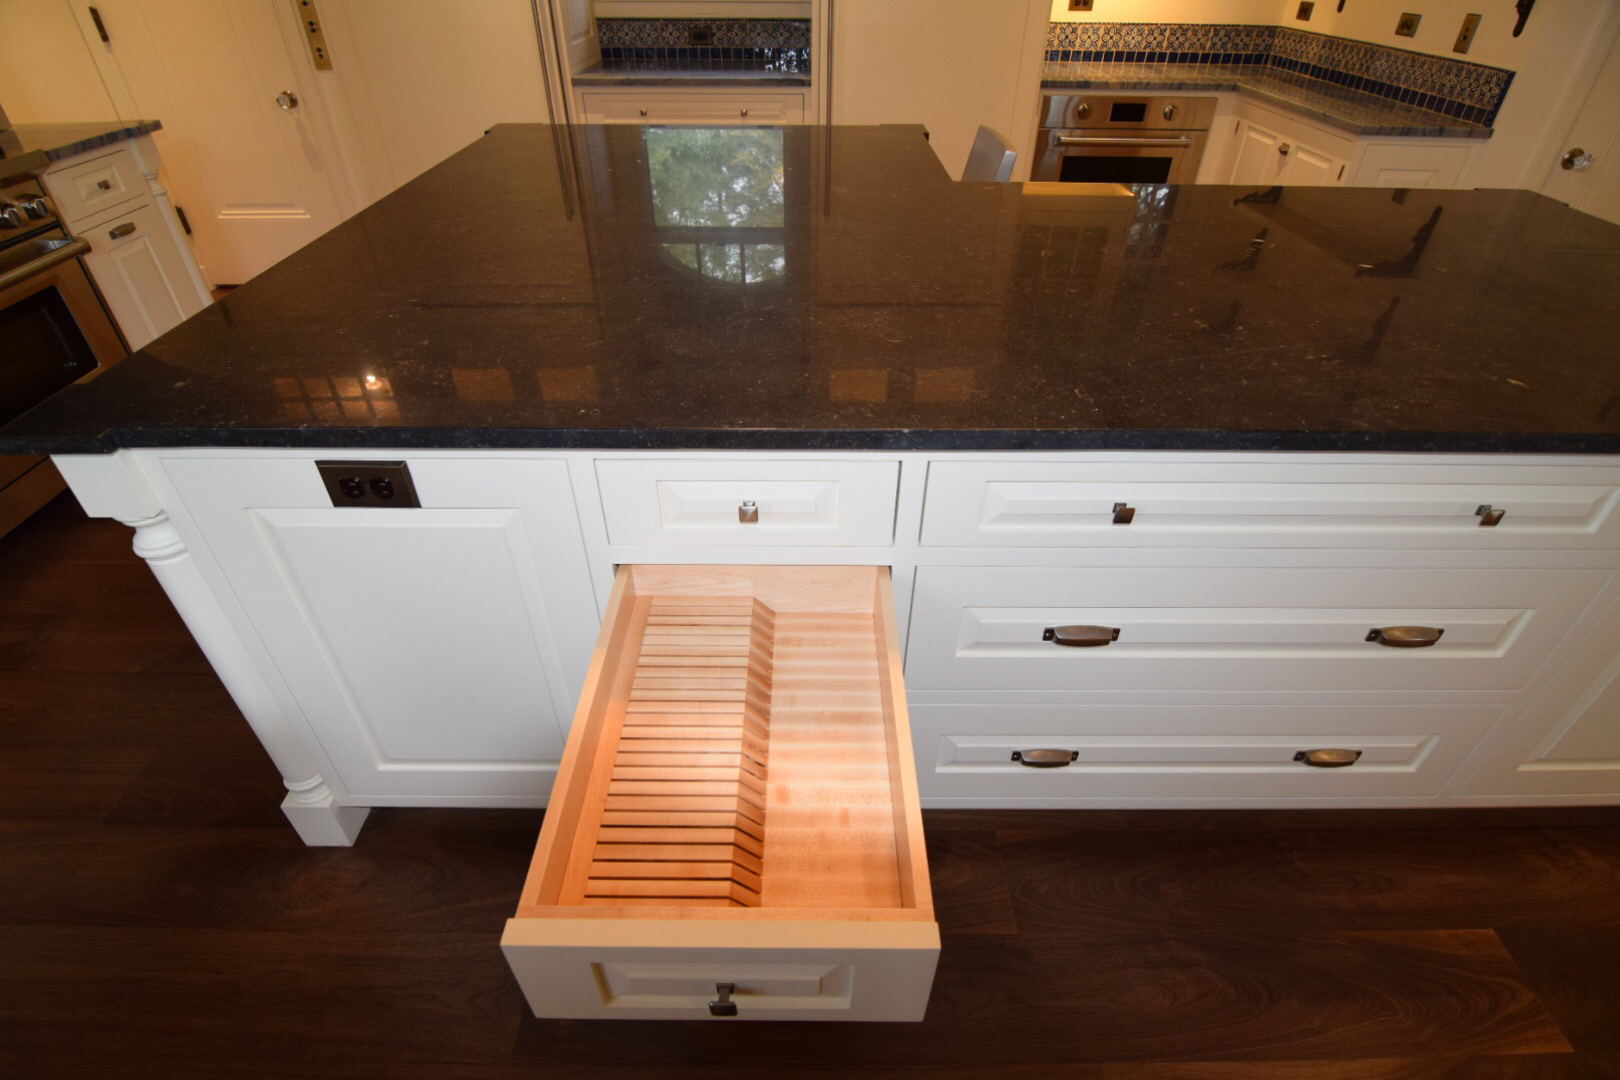 built-in-steak-knife-drawer-in-custom-white-lacquer-kitchen-with-hard-maple-face-frame-cabinetry-with-inset-doors-and-raised-panels.jpg